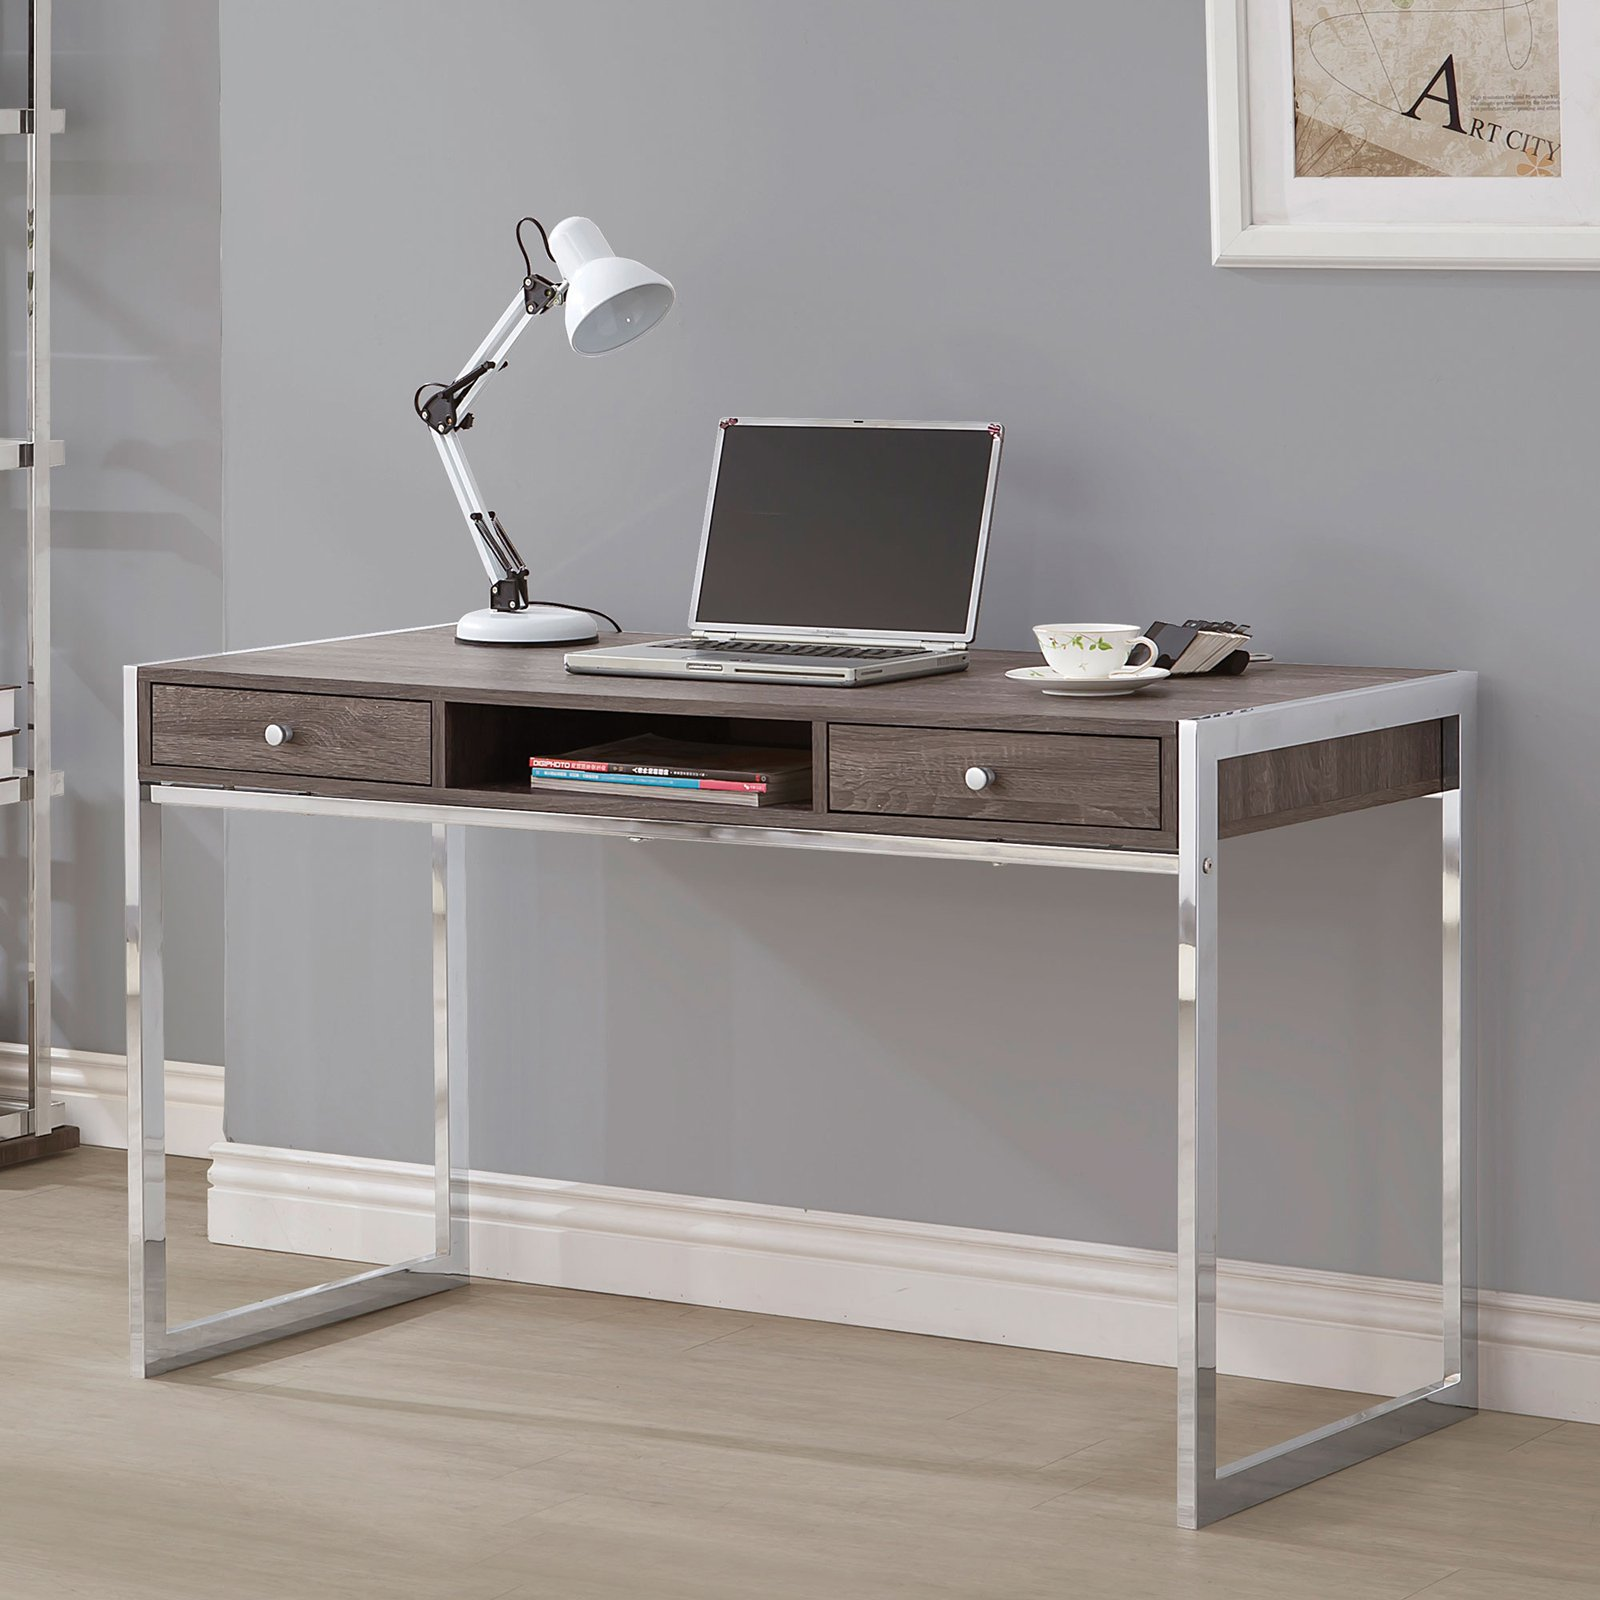 Coaster Contemporary Chrome Desk